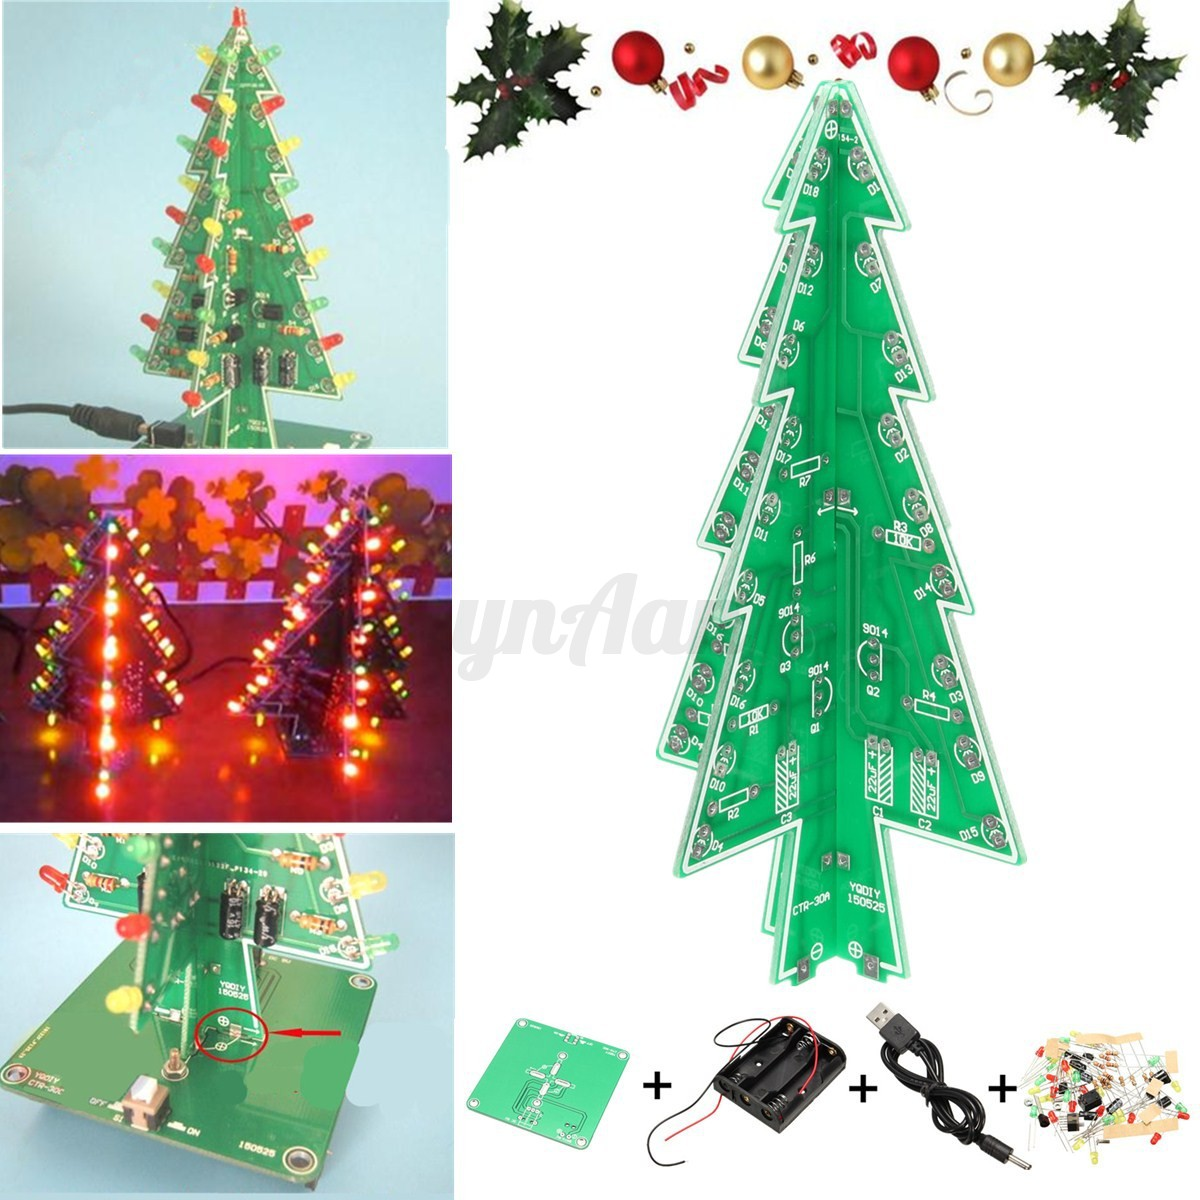 Christmas tree led flashing light diy kit circuit board for Red and yellow christmas tree